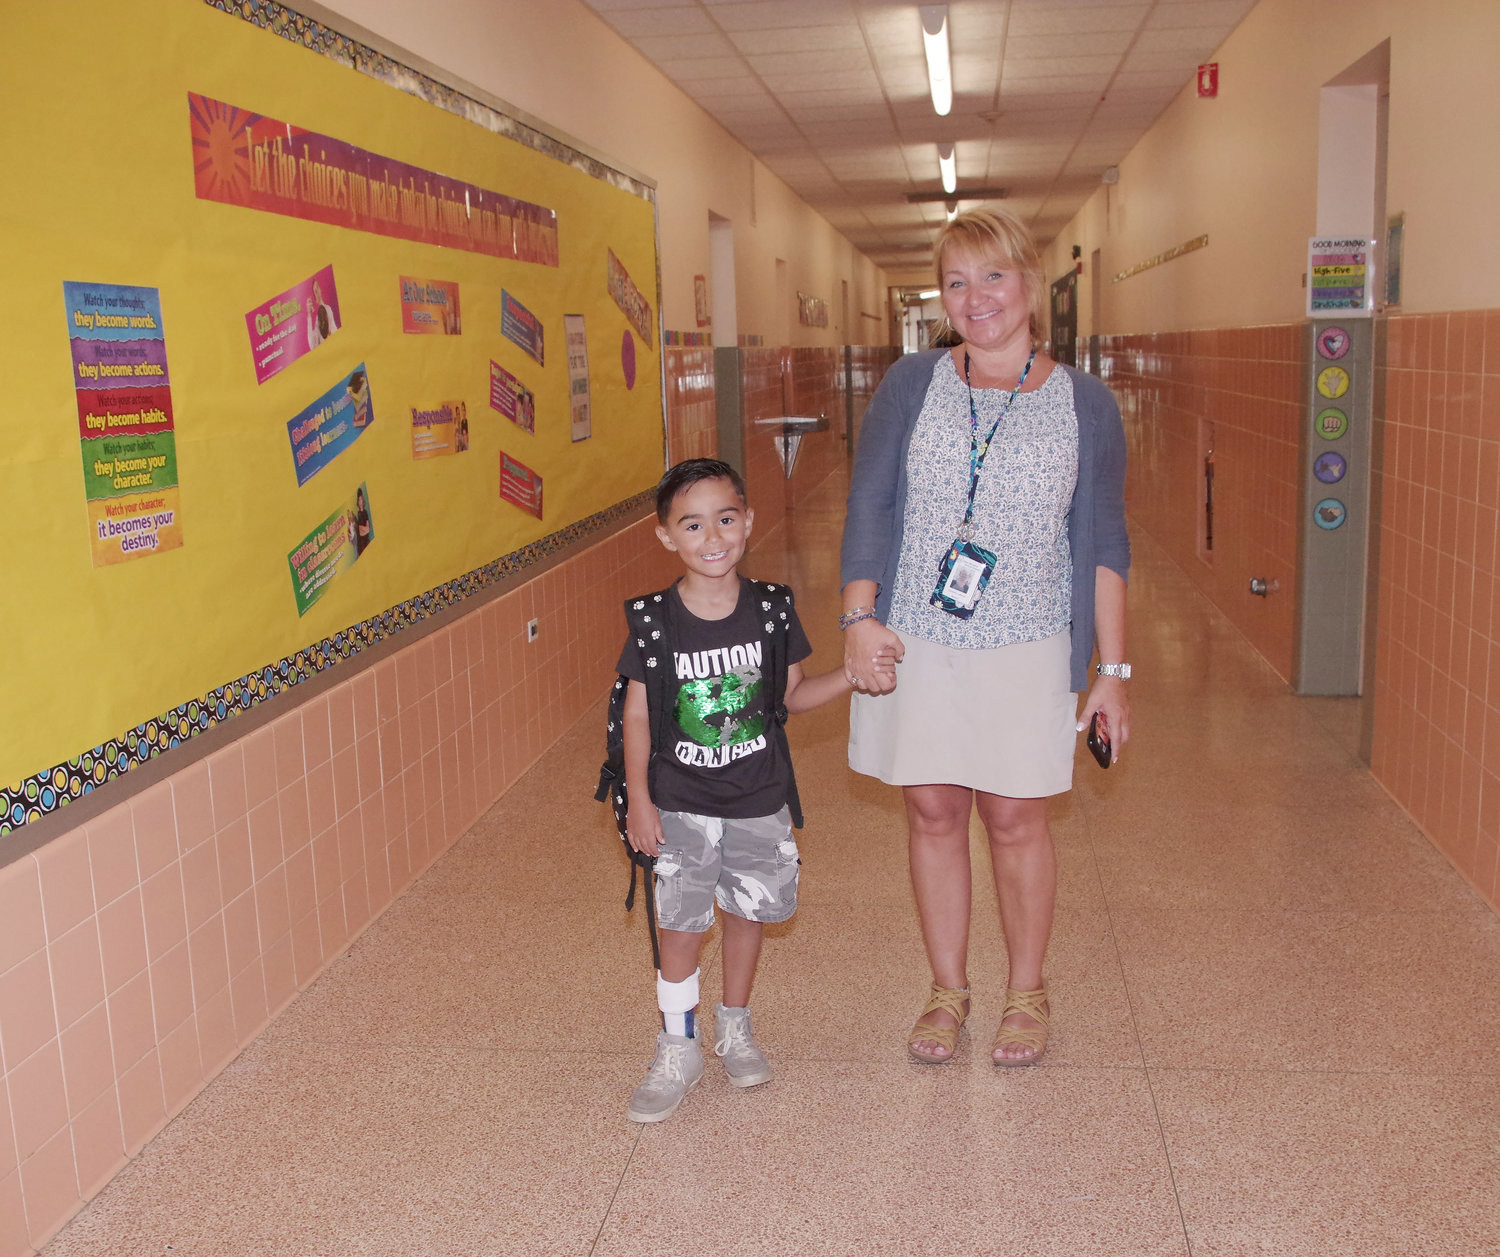 Connor Koshy, 6, was walked to class on his first day by Christine Larocca.